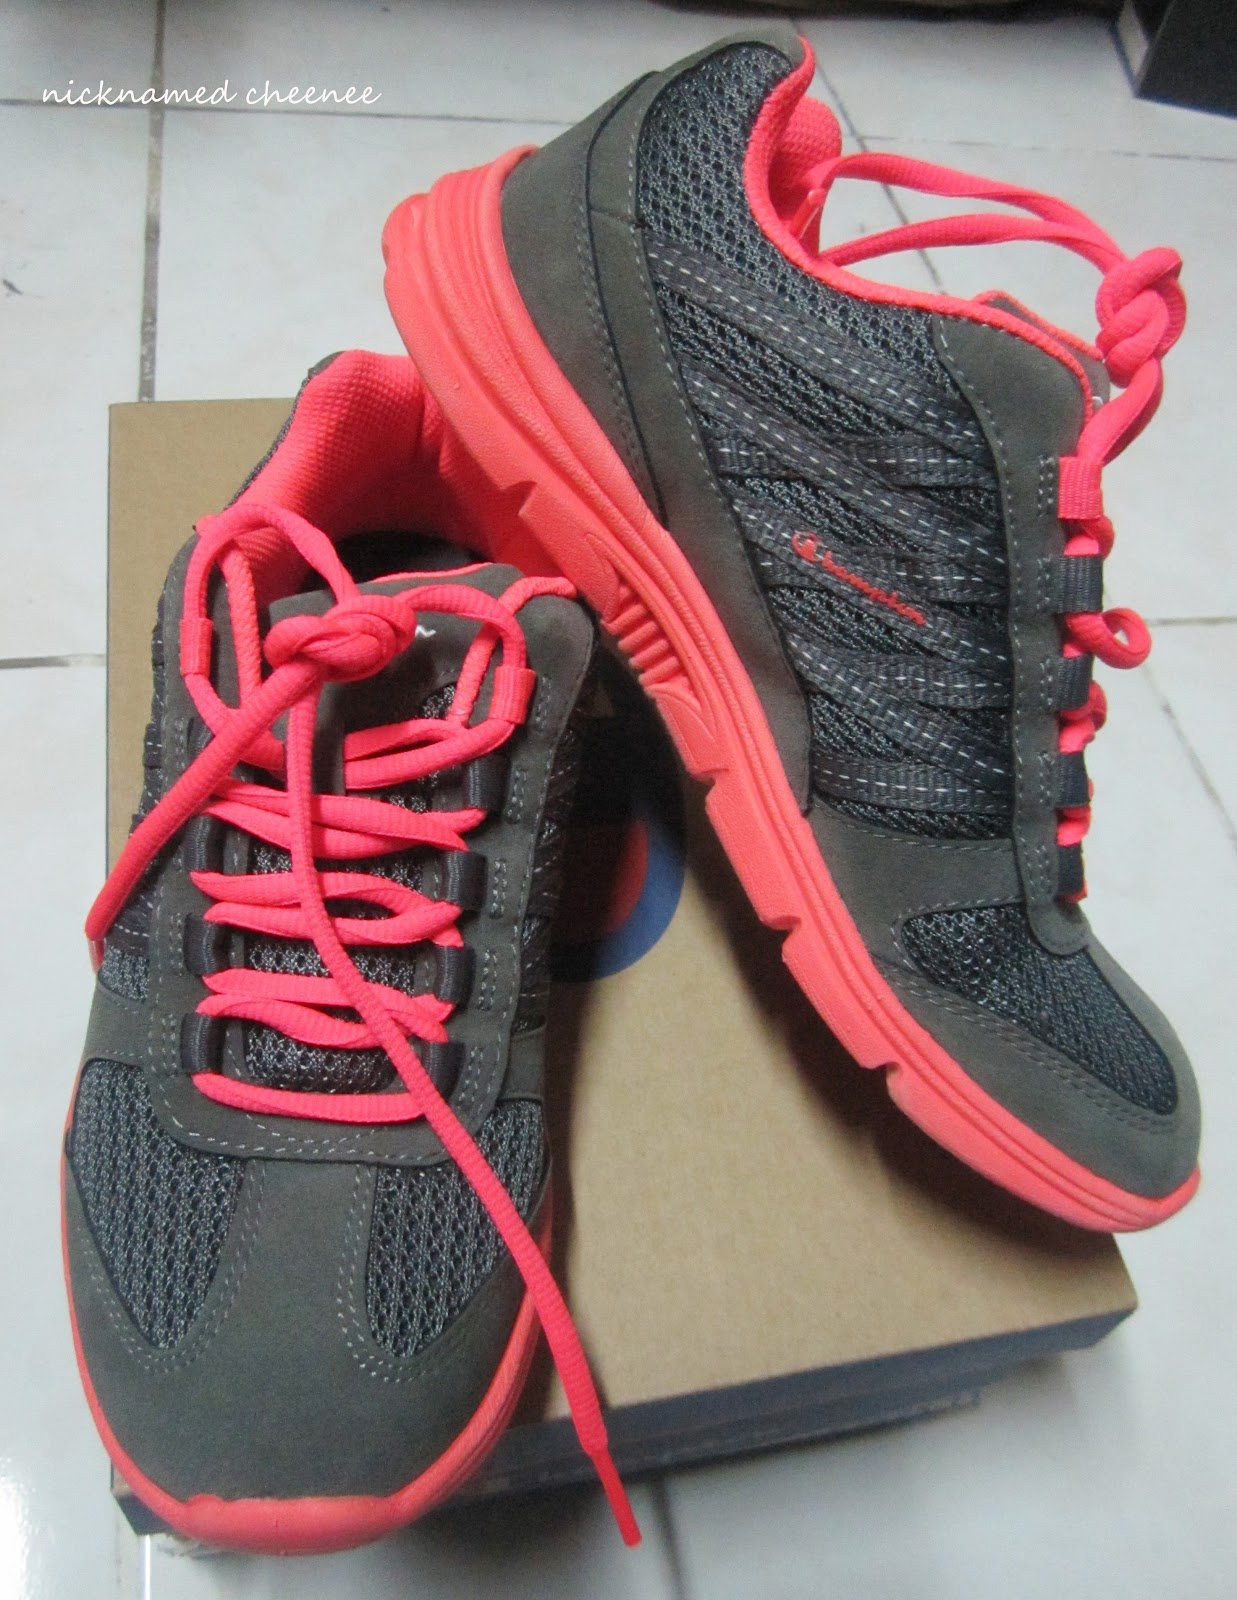 6231d03292c champion running shoes payless philippines Sale